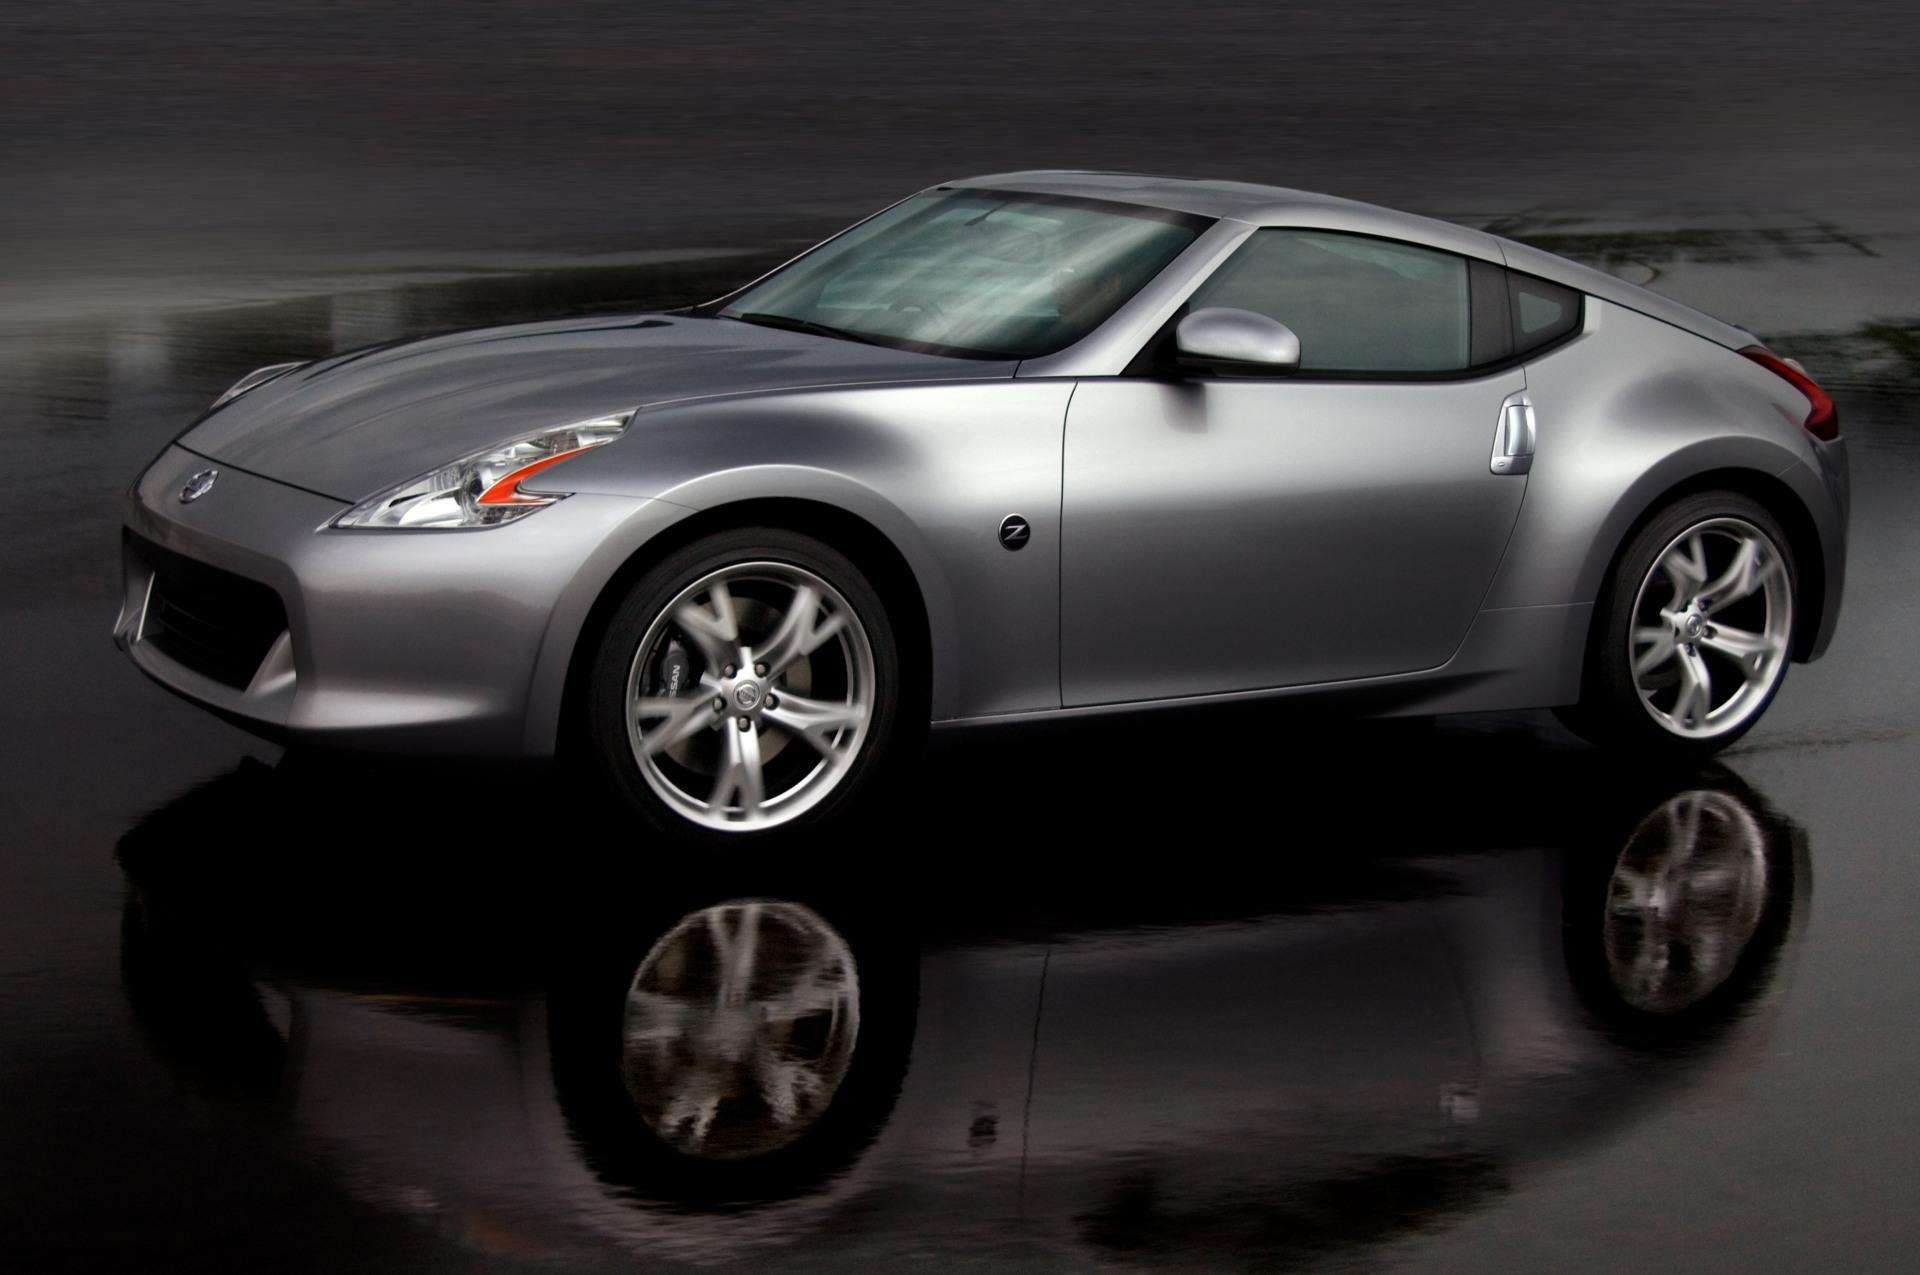 2009 nissan 370z information and photos momentcar nissan 370z 2009 2 nissan 370z 2009 2 vanachro Image collections